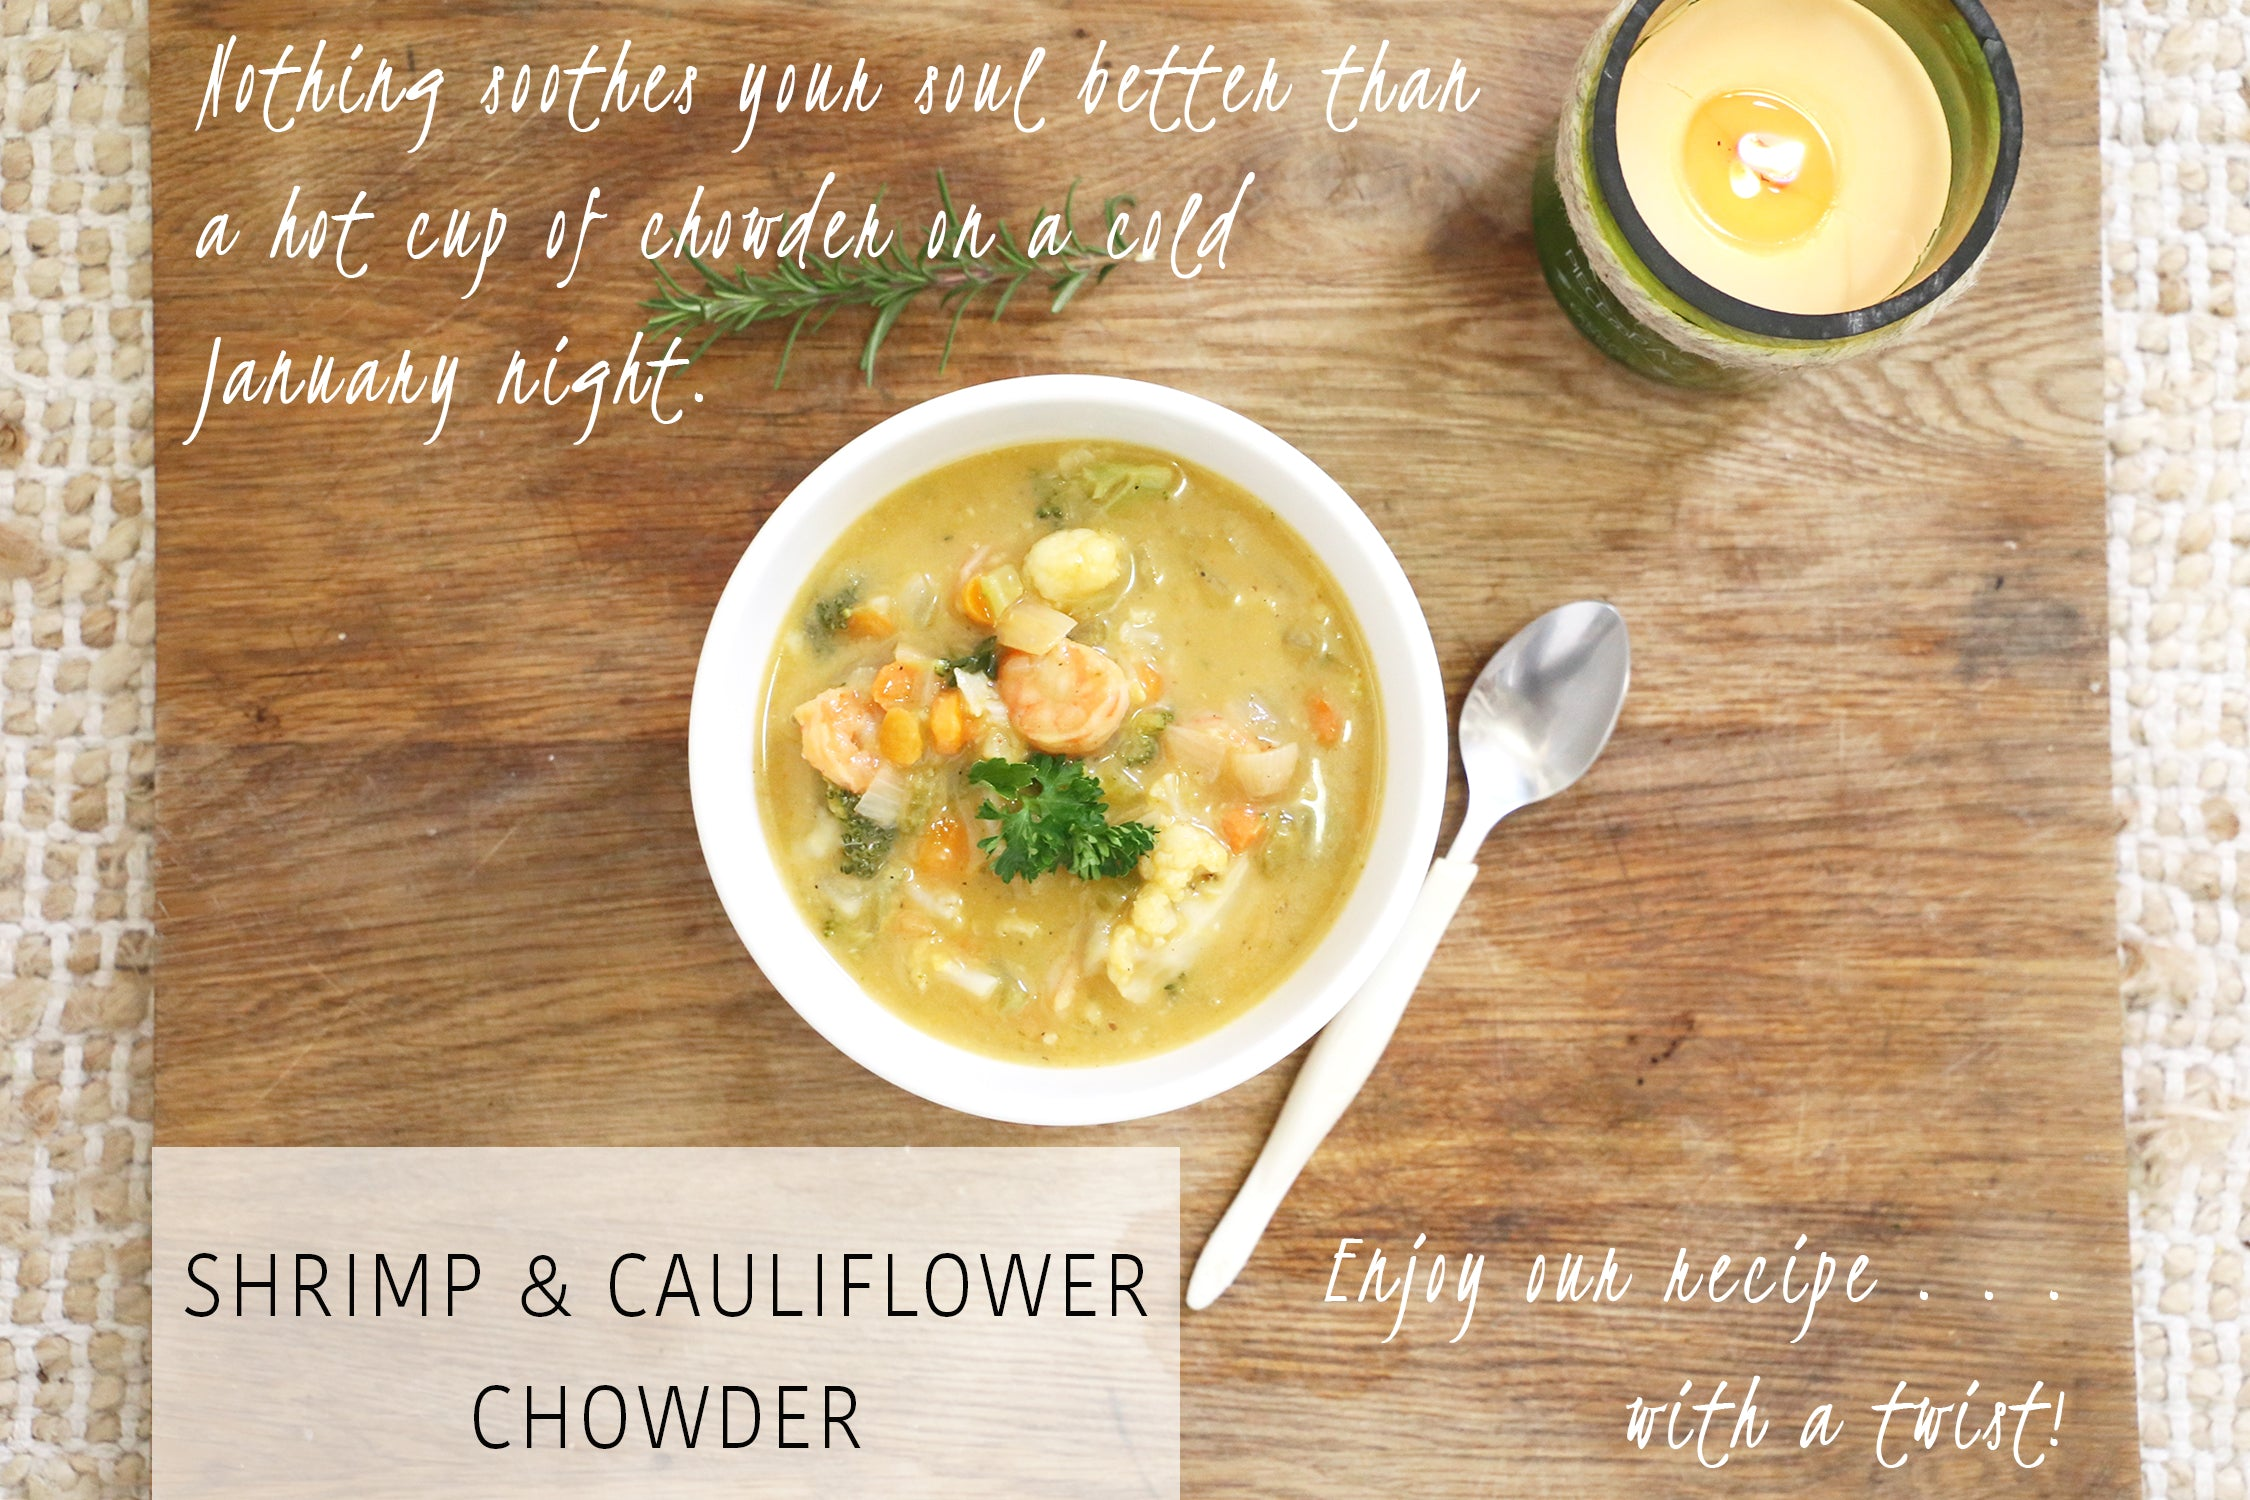 Nothing soothes your soul better than a hot cup of chowder on a cold  January night. Enjoy our recipe with a twist. Shrimp and Cauliflower chowder.